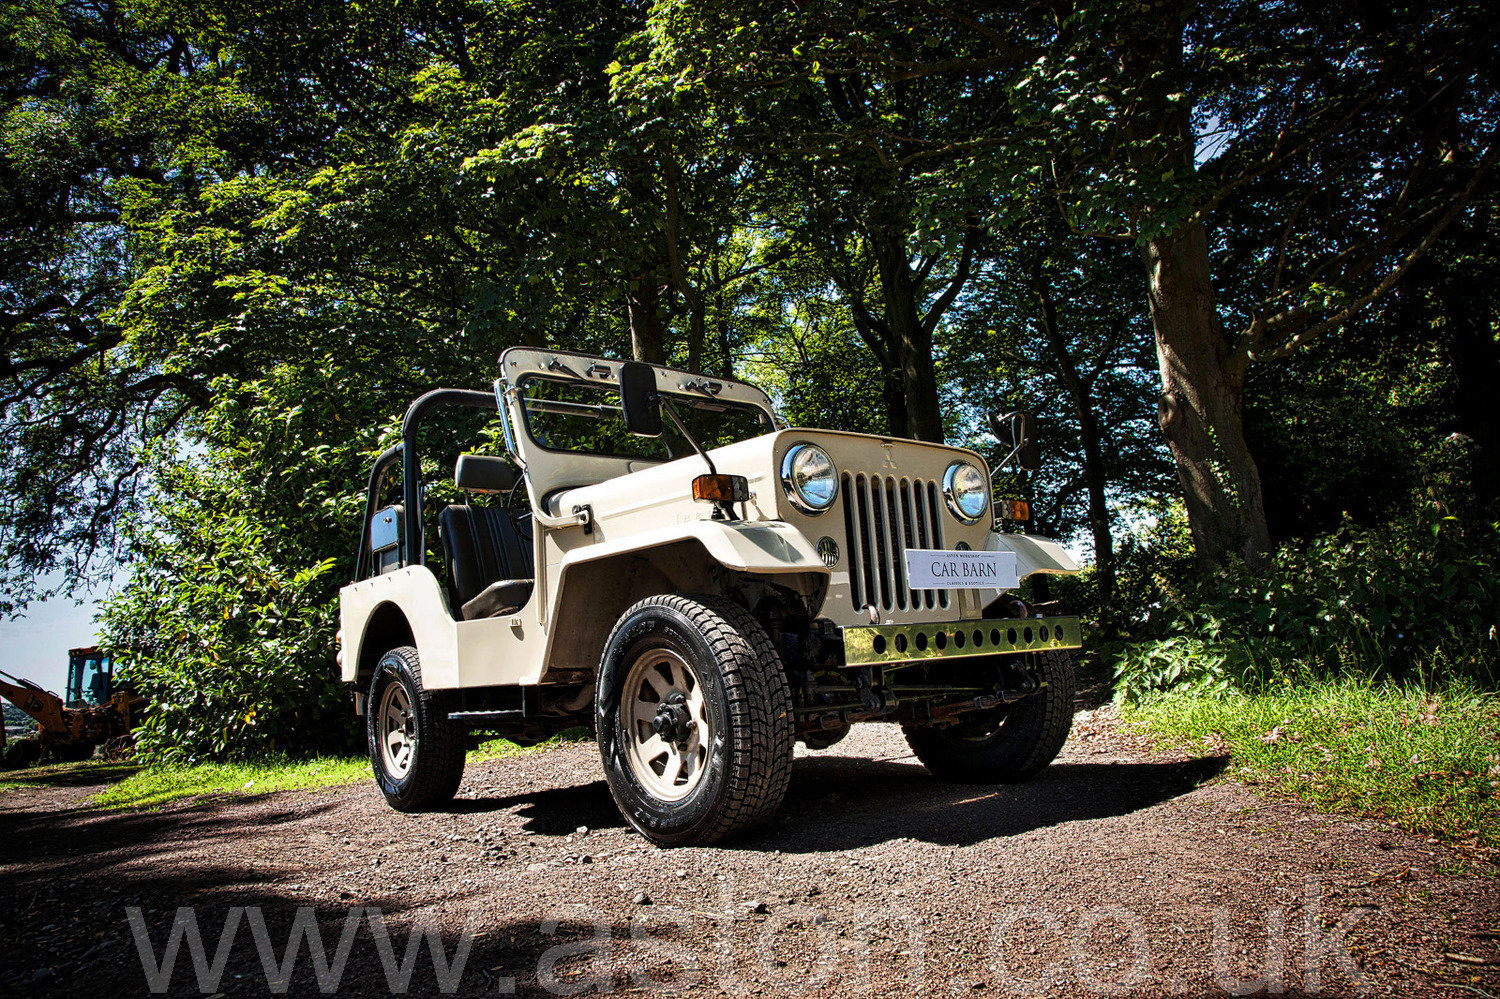 1998 Mitsubishi Jeep 2.7 TD (J55) For Sale (picture 1 of 6)